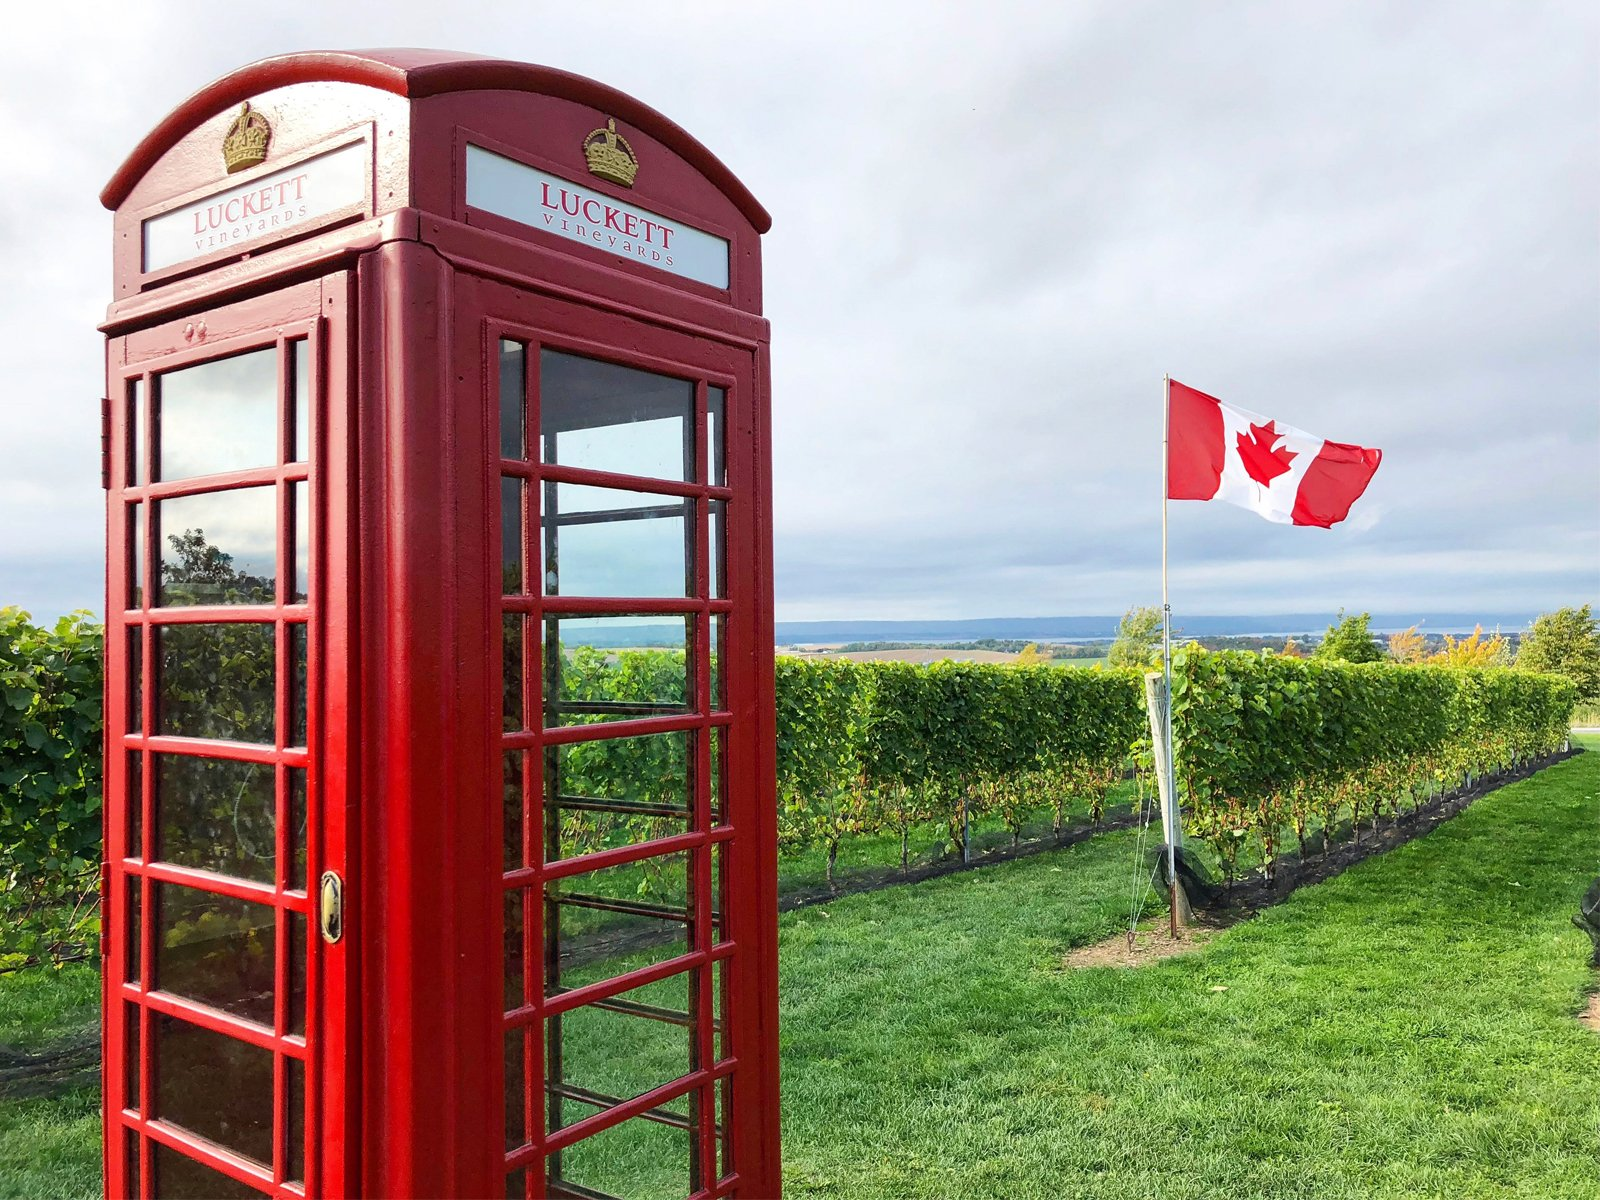 the red phone booth at luckett vineyards in Wolfville, Nova Scotia